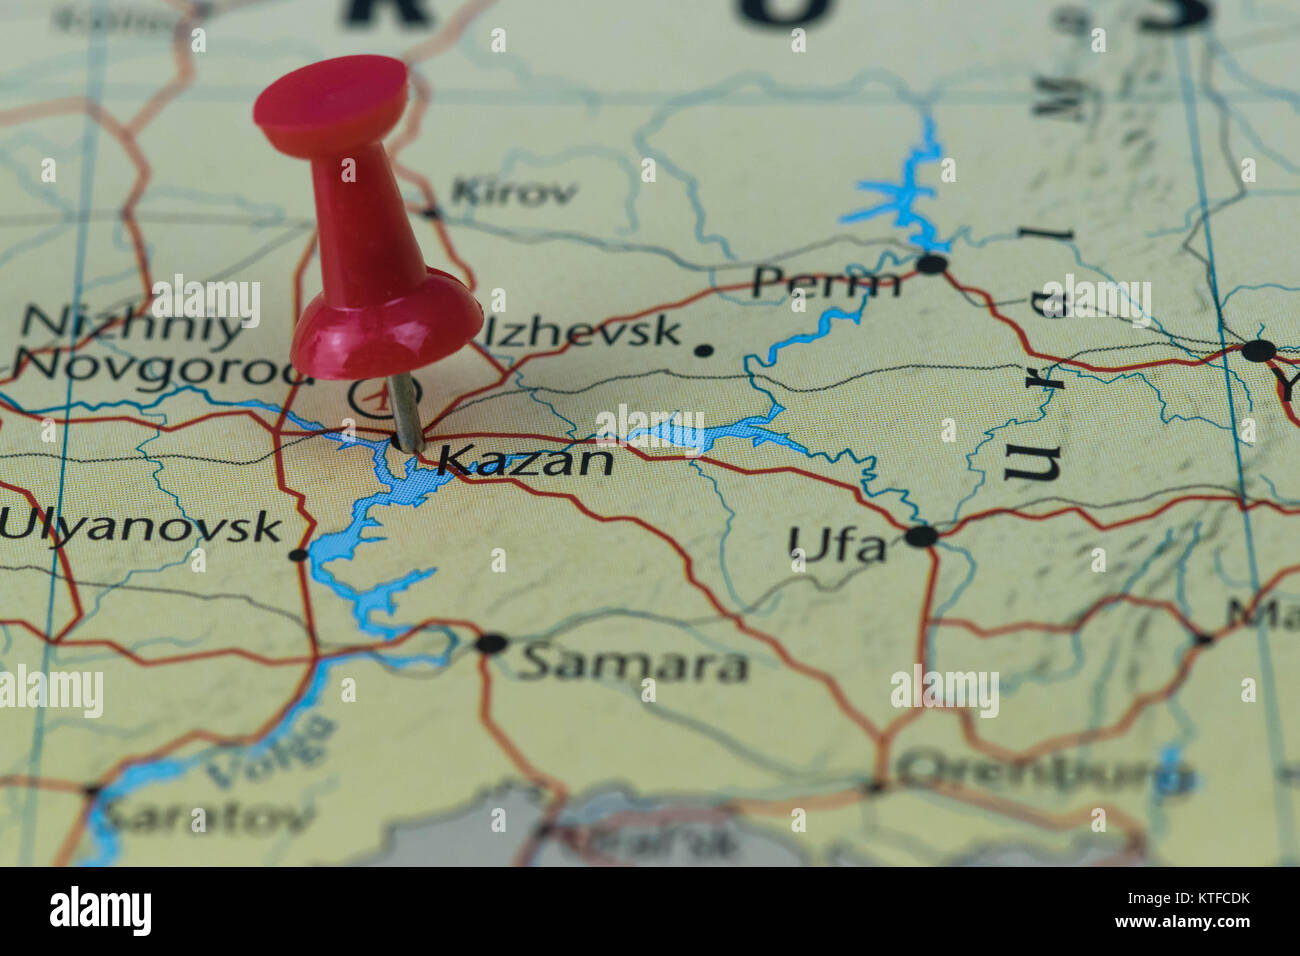 Kazan pinned in a closeup map for football world cup 2018 in Russia